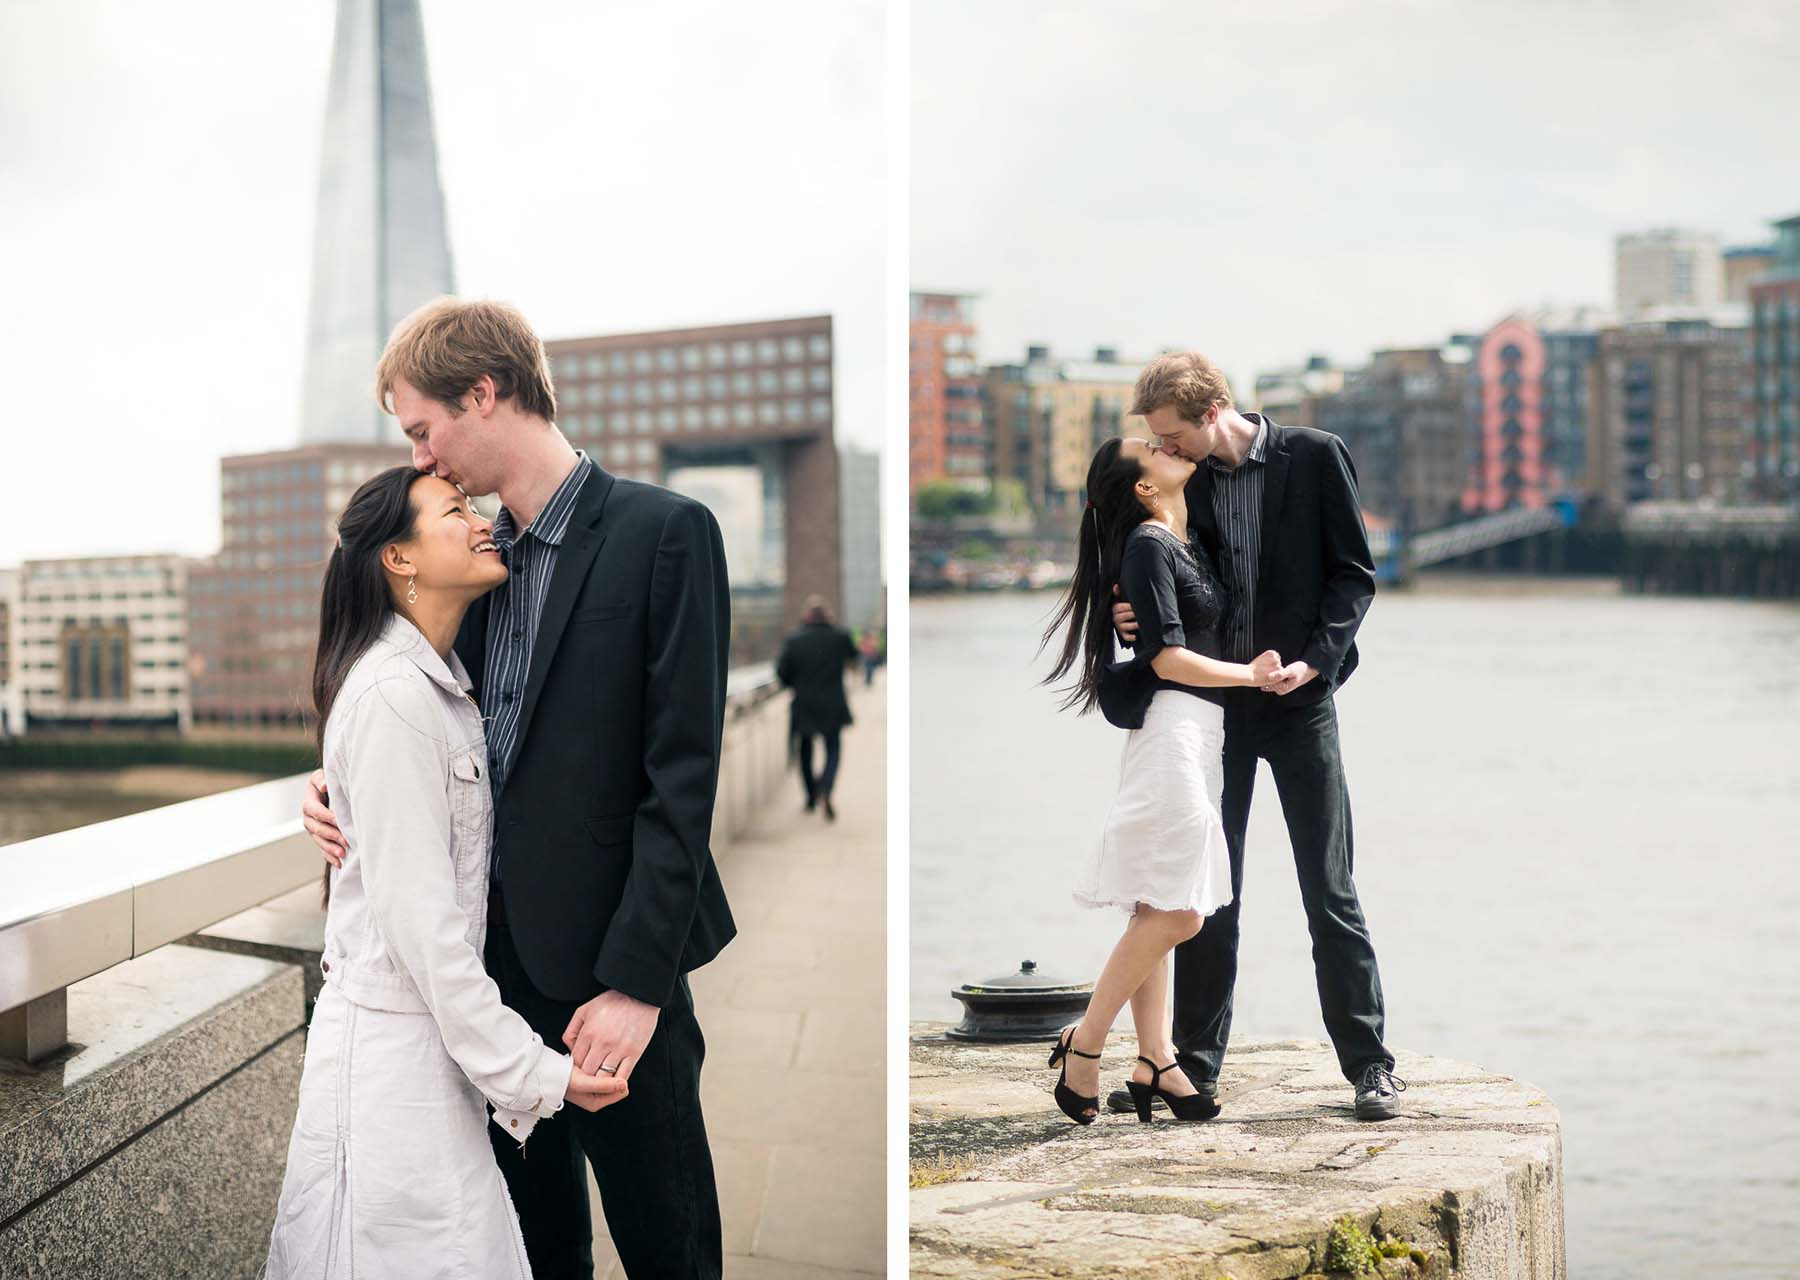 london-bridge-engagement-shoot-river-outdoors-reportage-09